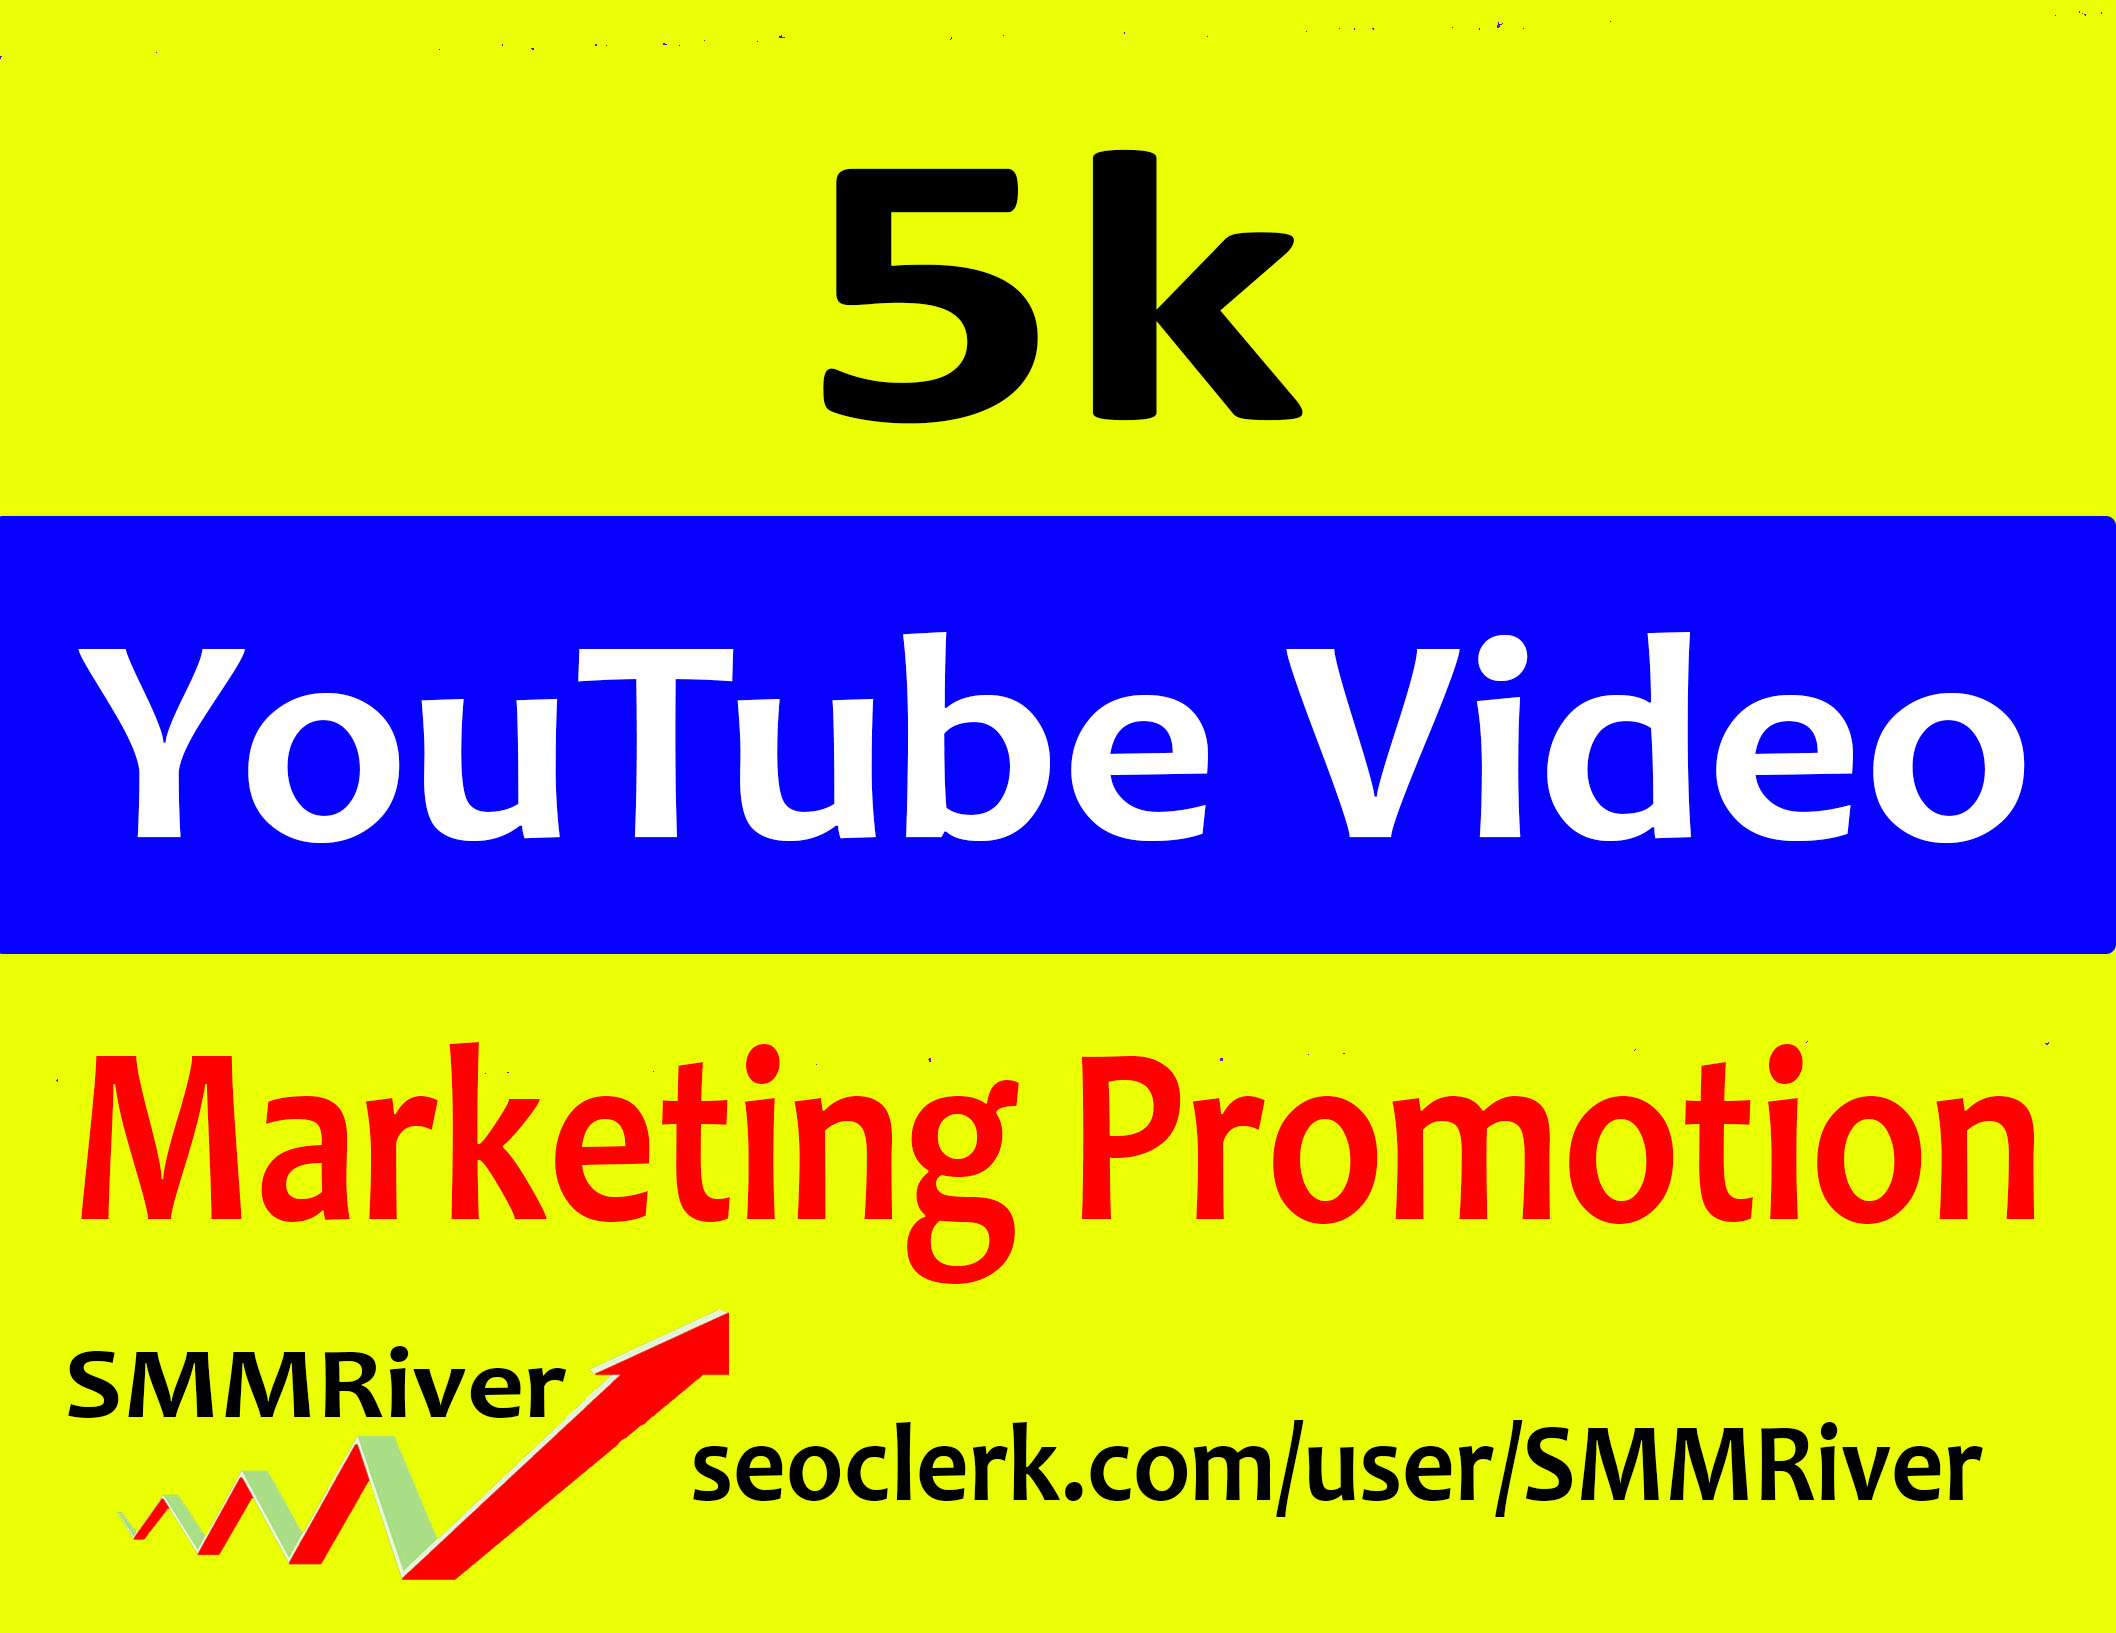 YouTube Video Promotion & Marketing Express Delivery